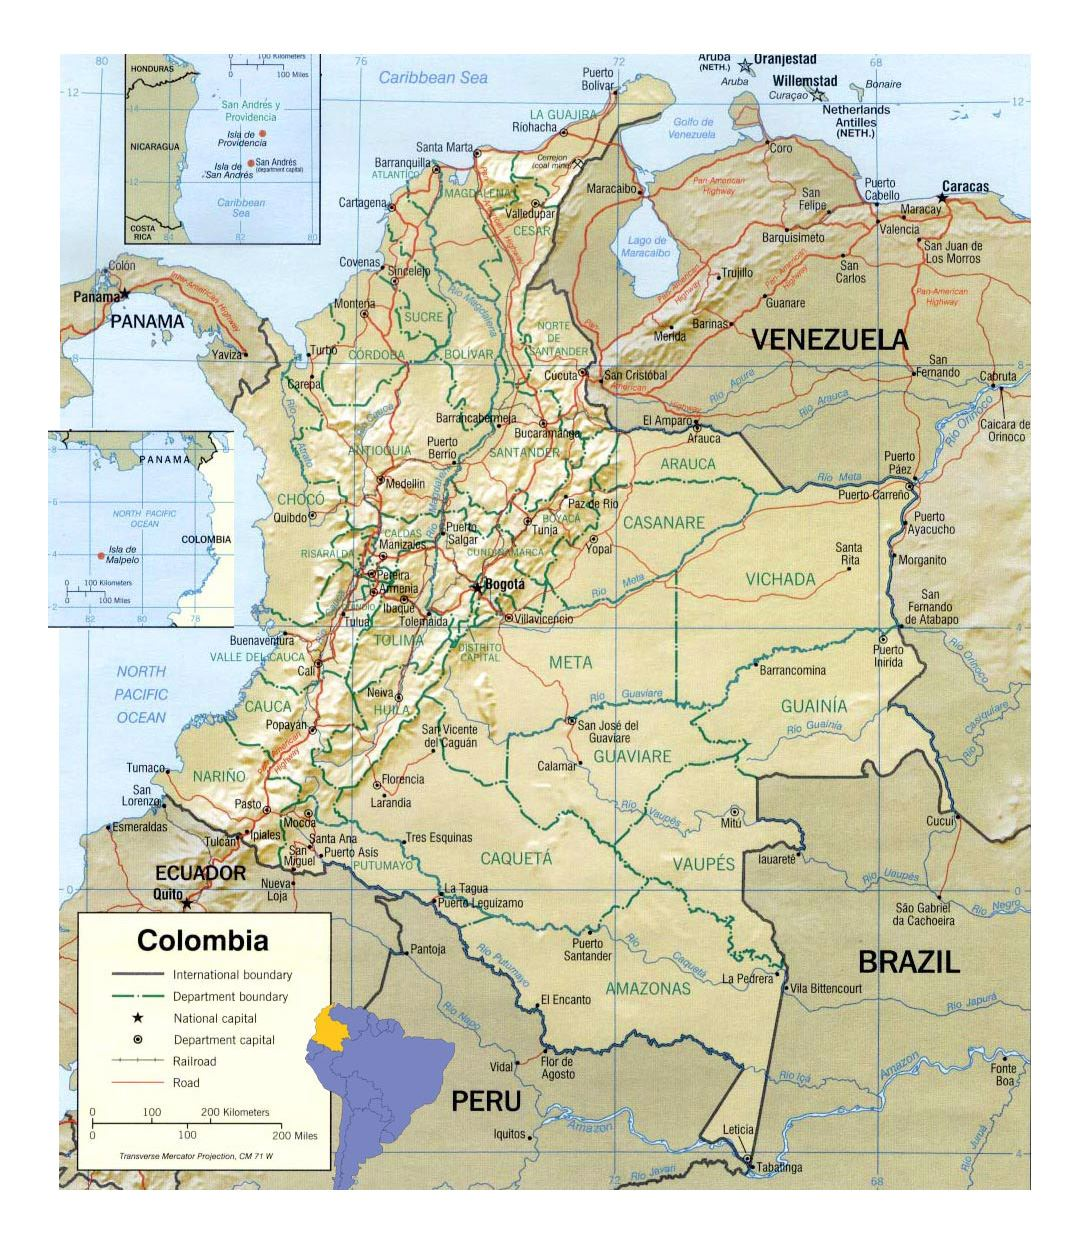 Detailed political and administrative map of Colombia with relief, roads and cities